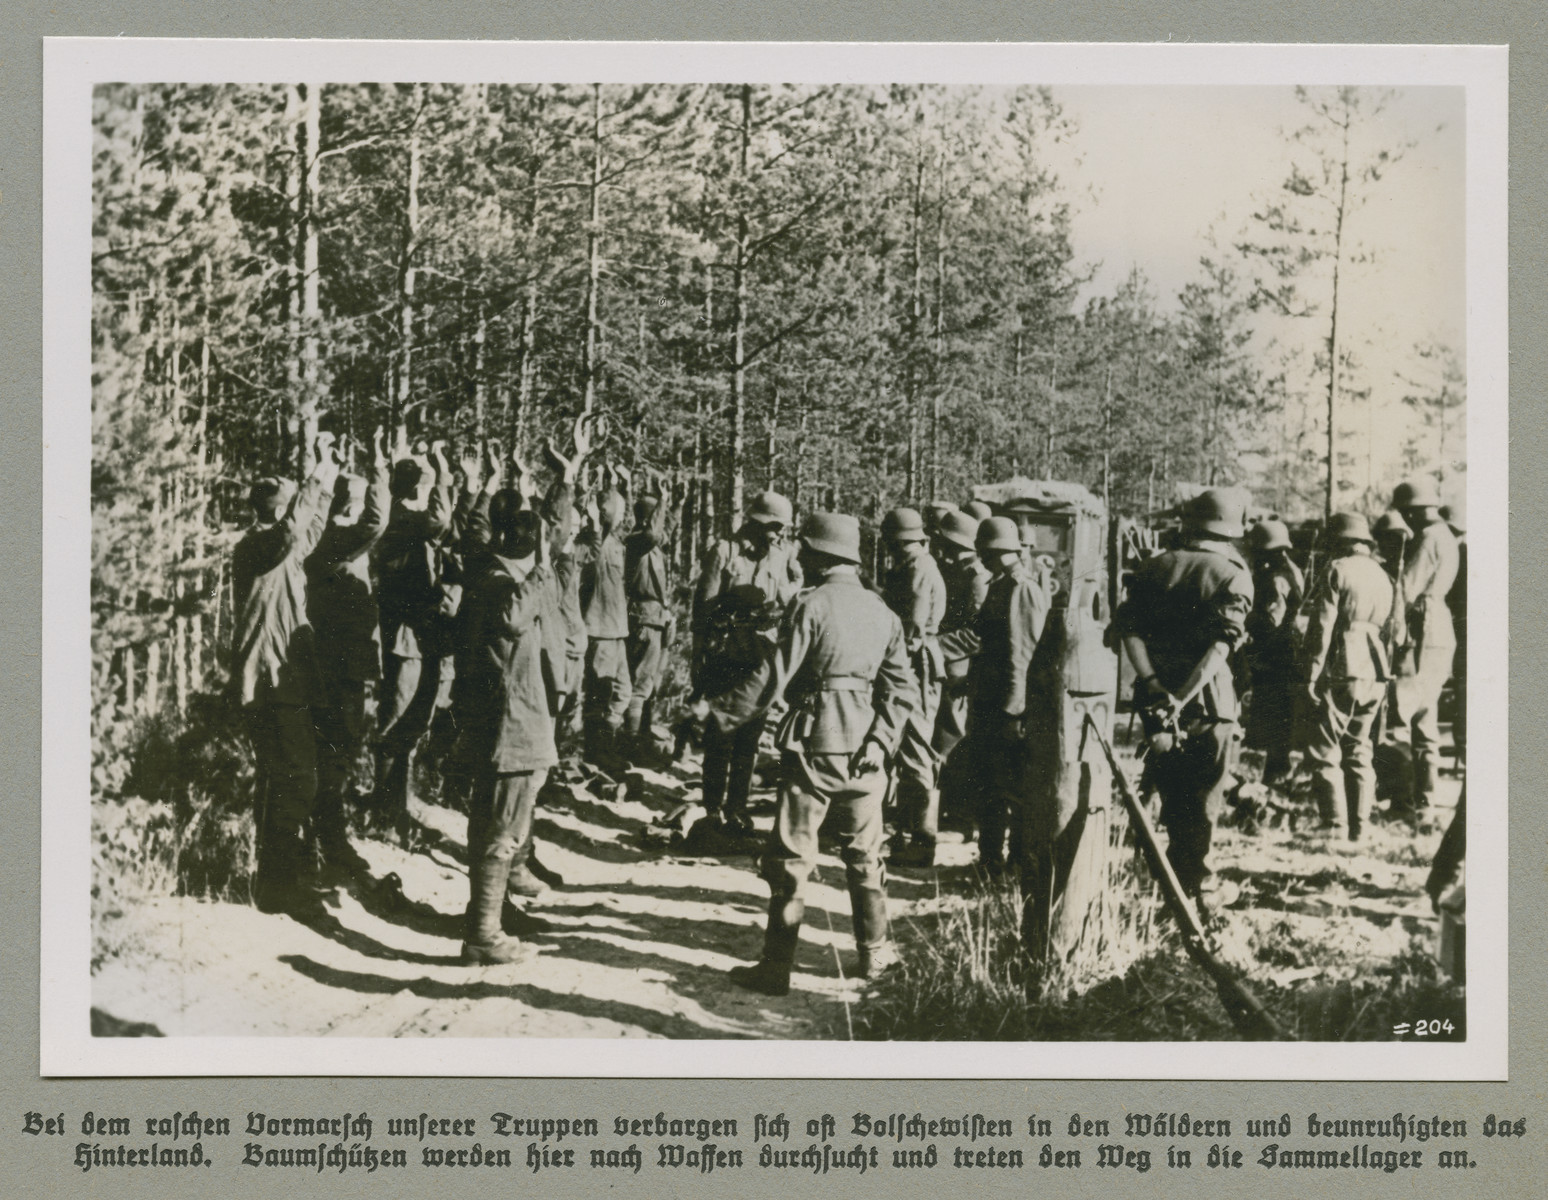 Men with their hands raised are detained by German forces.  Original Caption reads: During the rapid advance of German forces Bolshevists often hid in the forests and agitated the back country. In this image Baumschützen (forest snipers) are searched for weapons and make thier way to the detention camp.